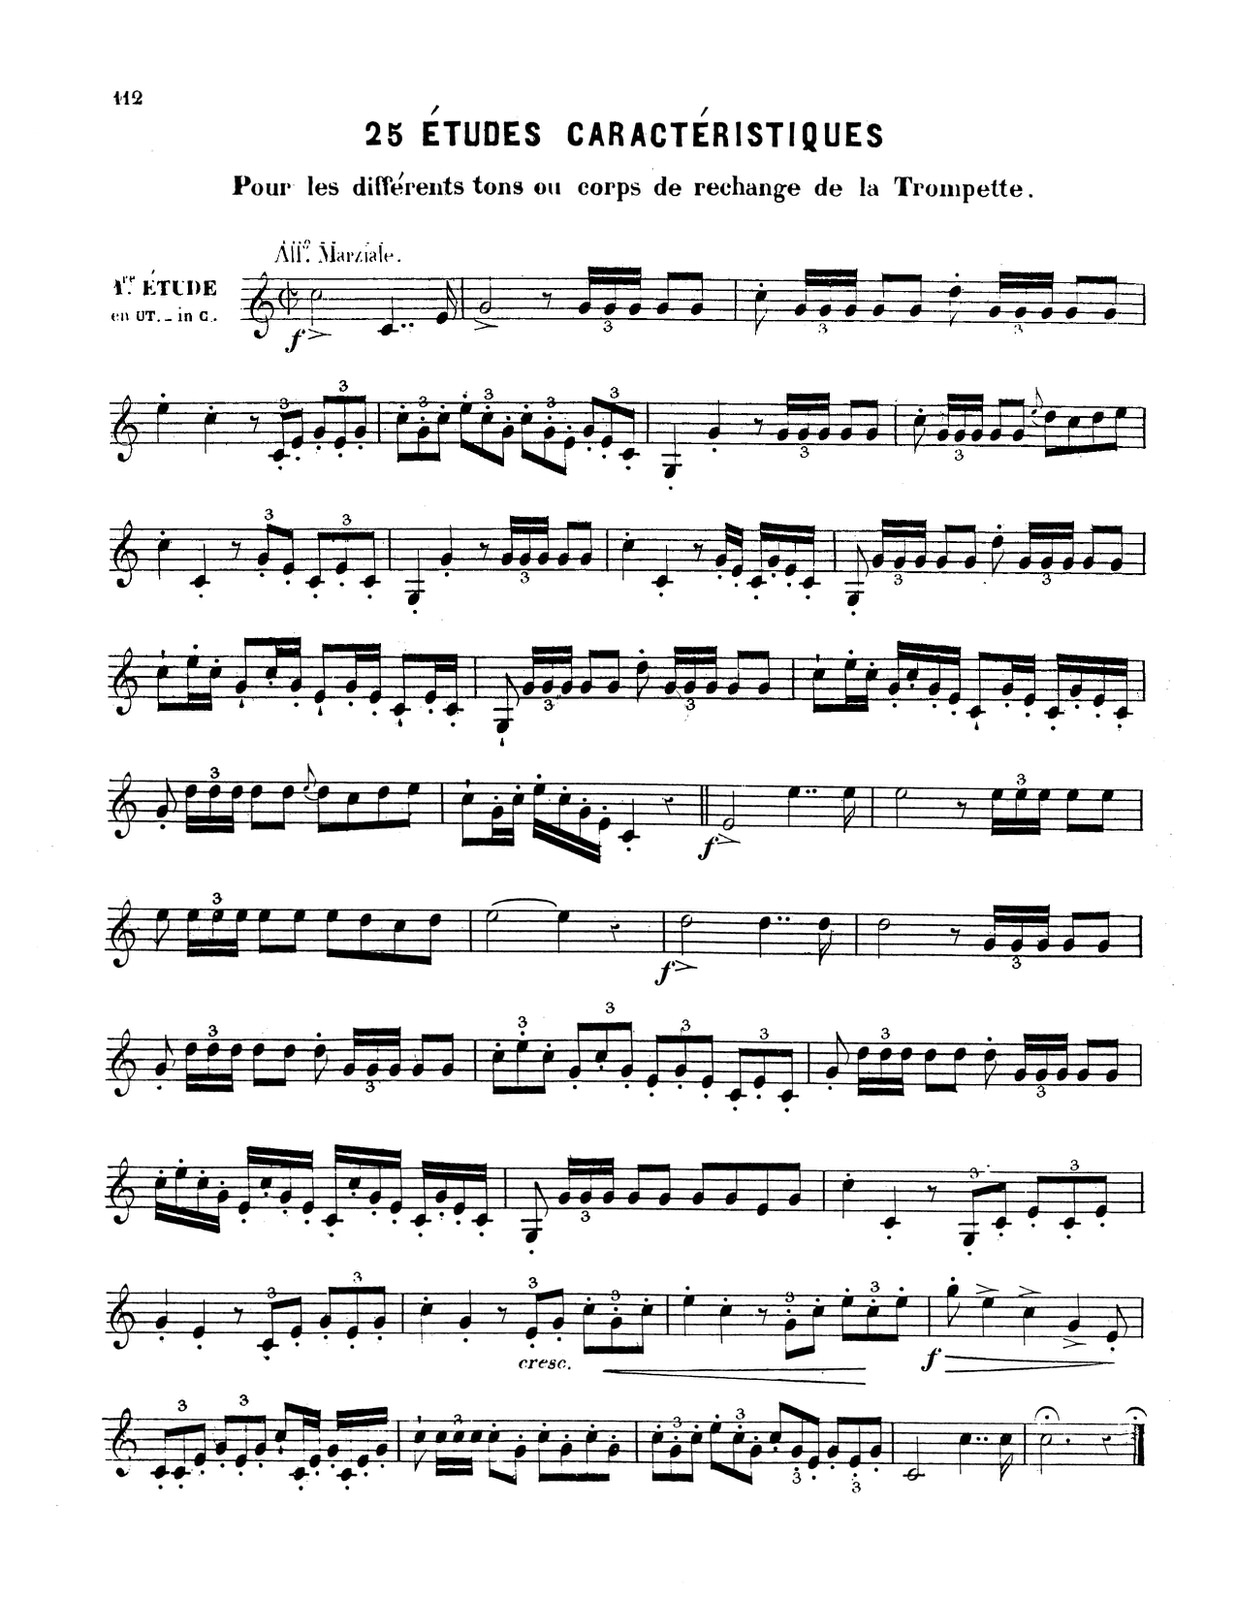 Dauverne, Method for the Trumpet 10